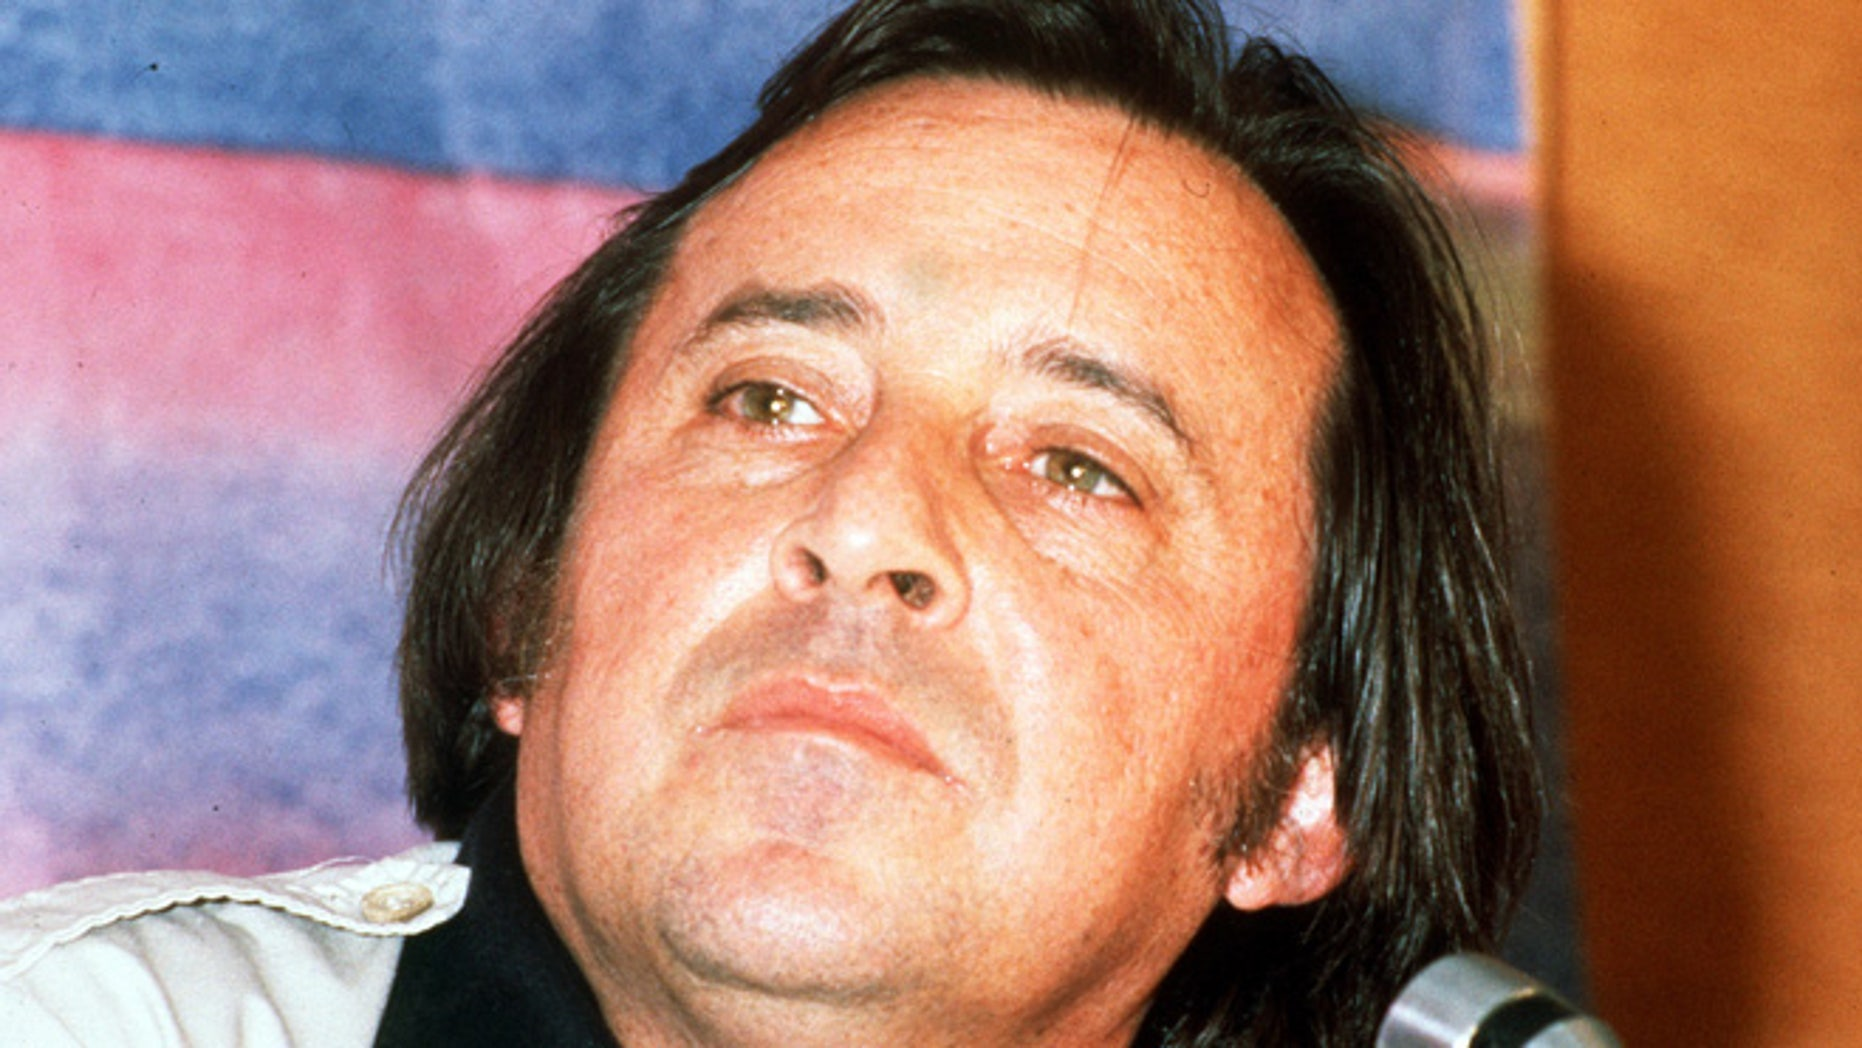 This 1978 file photo shows American actor and film director Paul Mazursky. (AP)